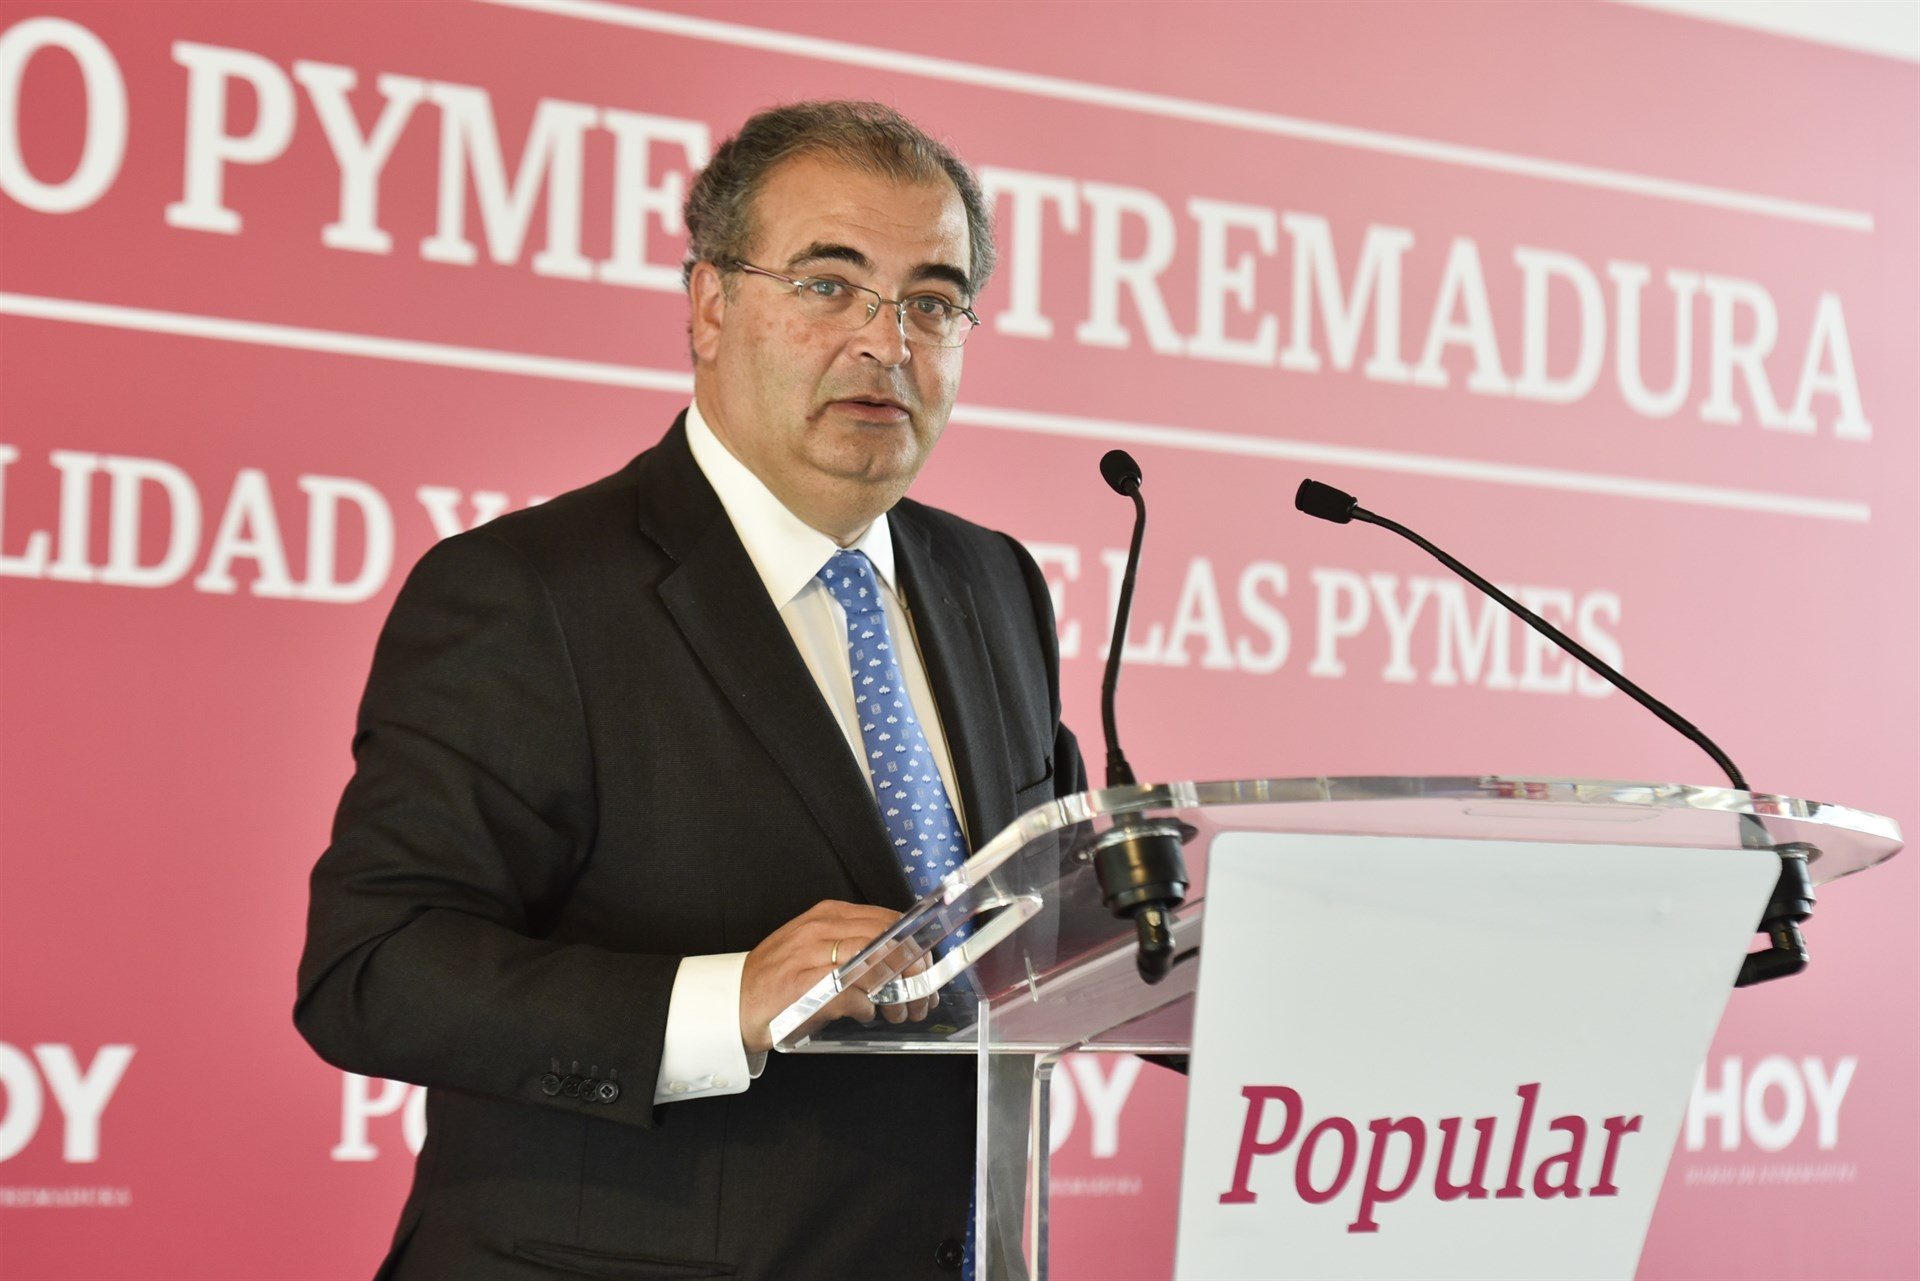 Banco Popular Clausulas Suelo El Expresidente Del Popular Sale Del Banco Sin